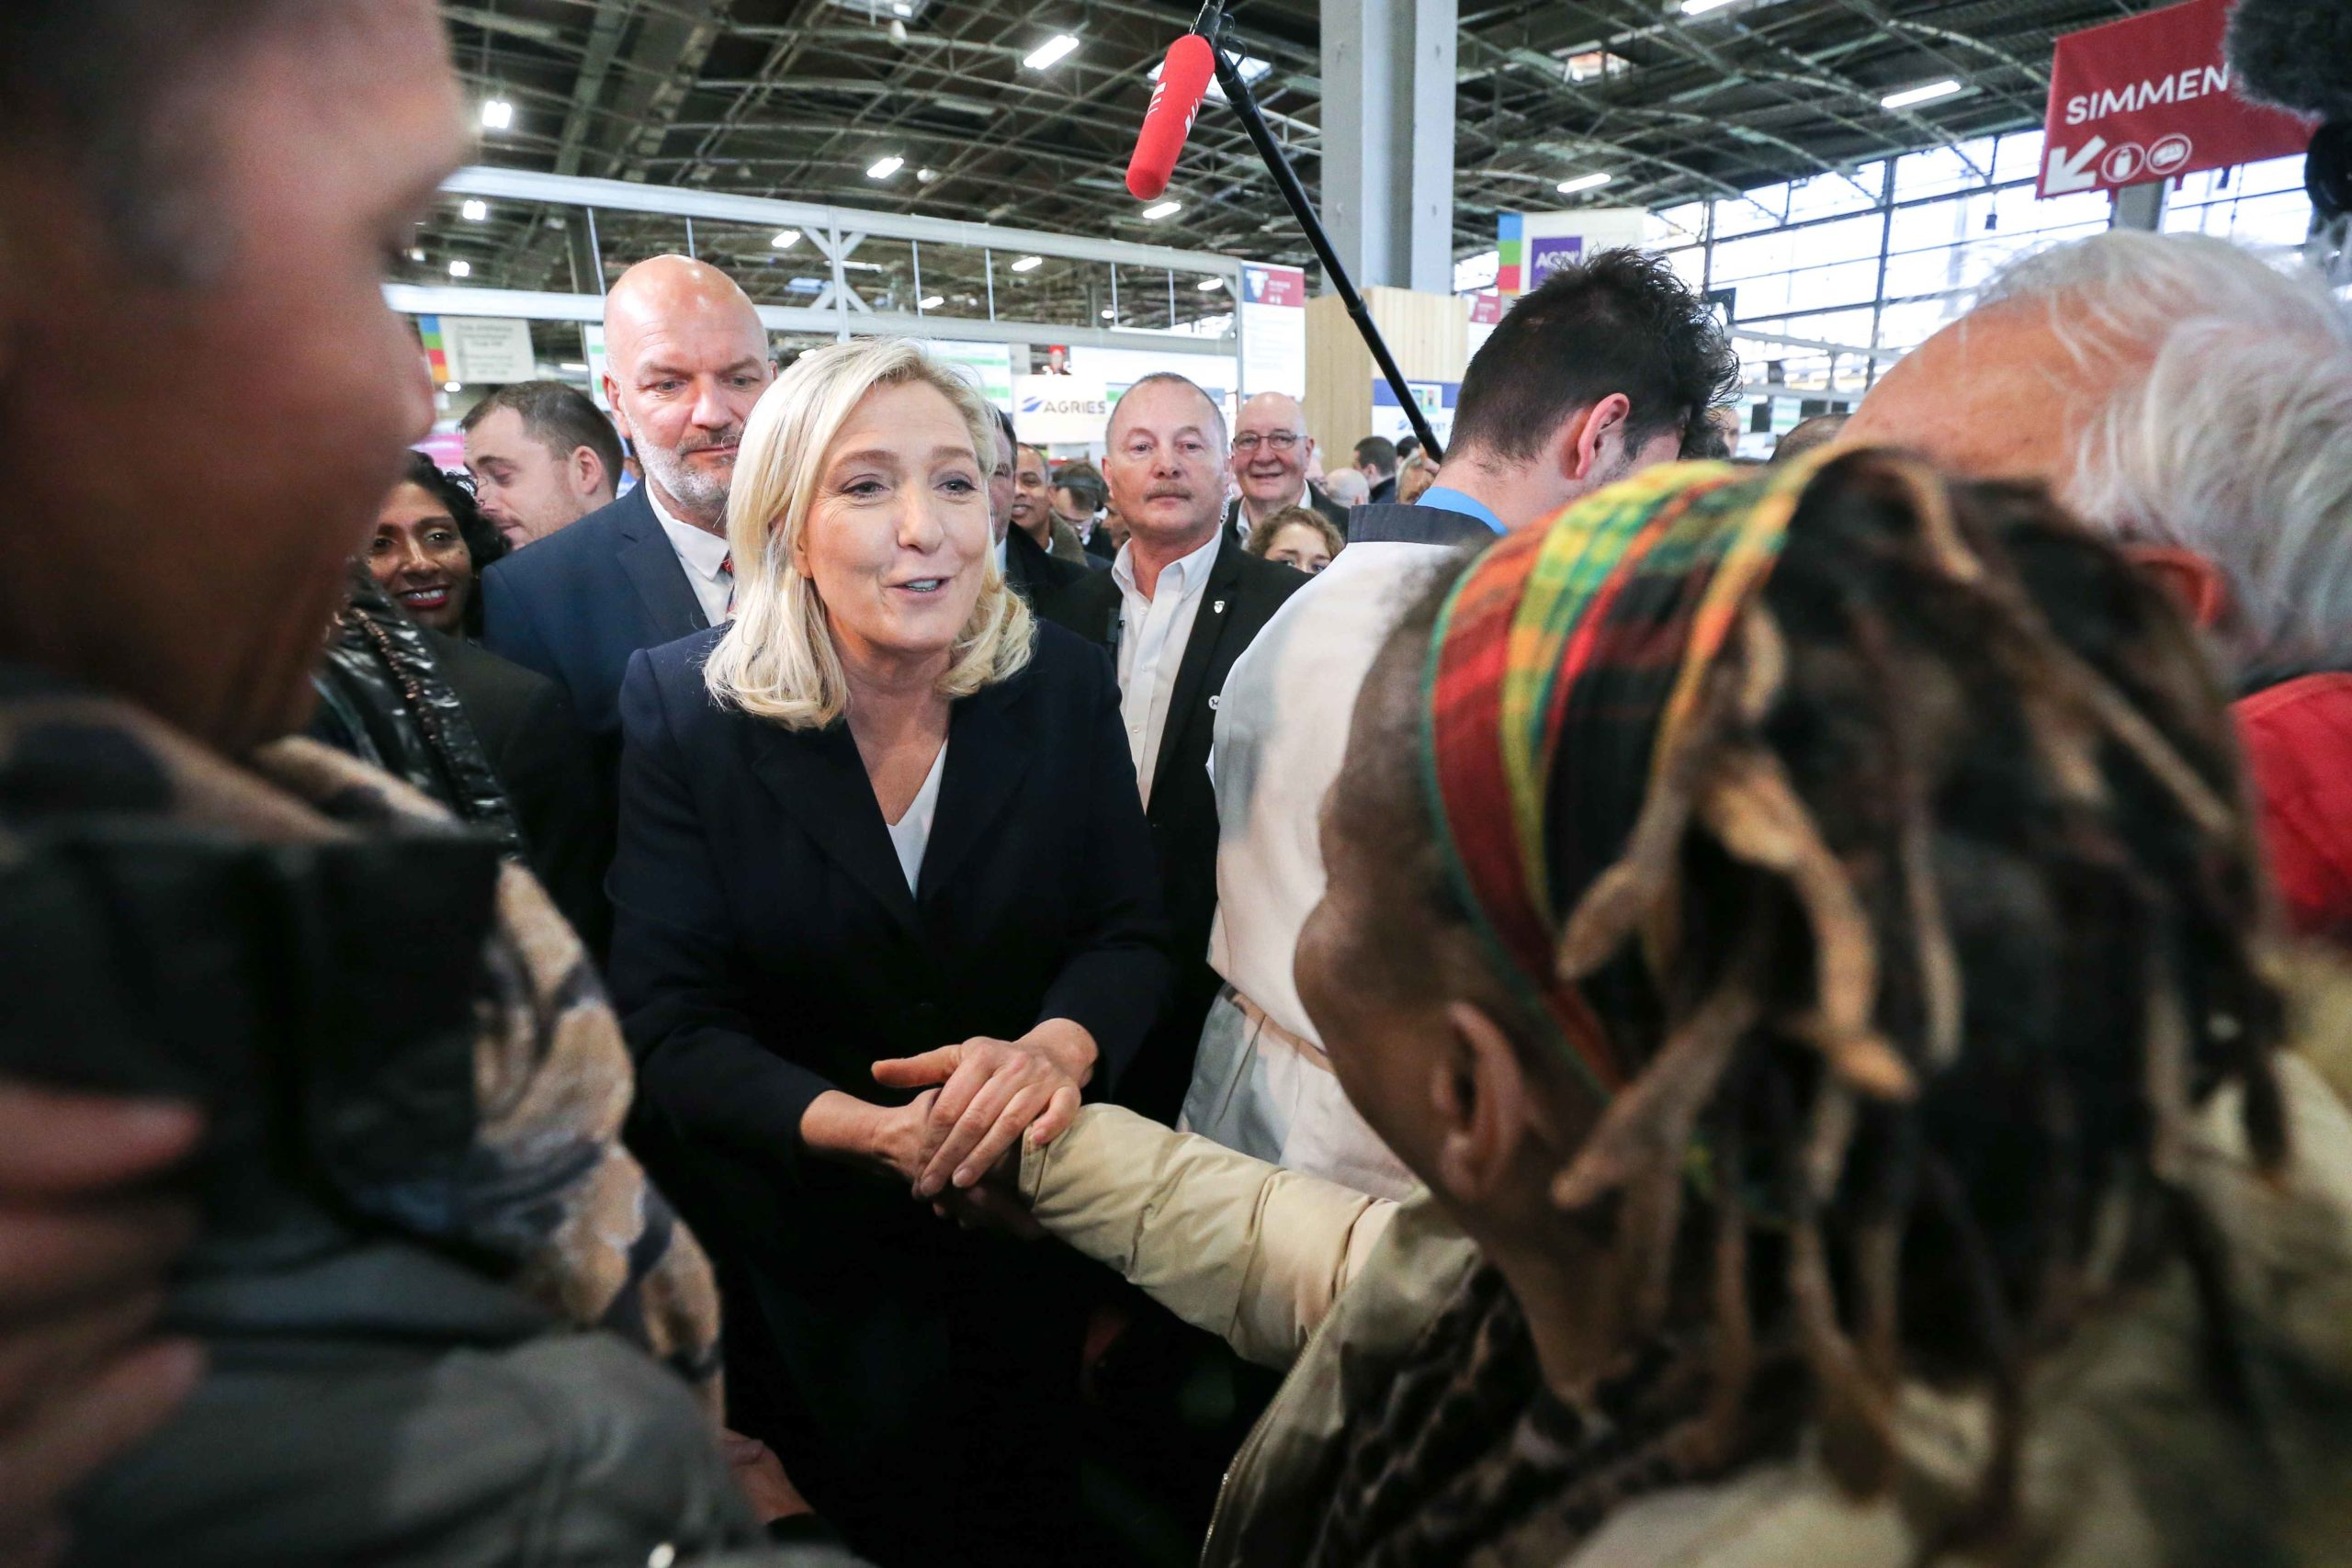 Marine Le Pen visite le Salon international de l'agriculture. © Michel Stoupak. Mar 25.02.2020, 10:25:25.